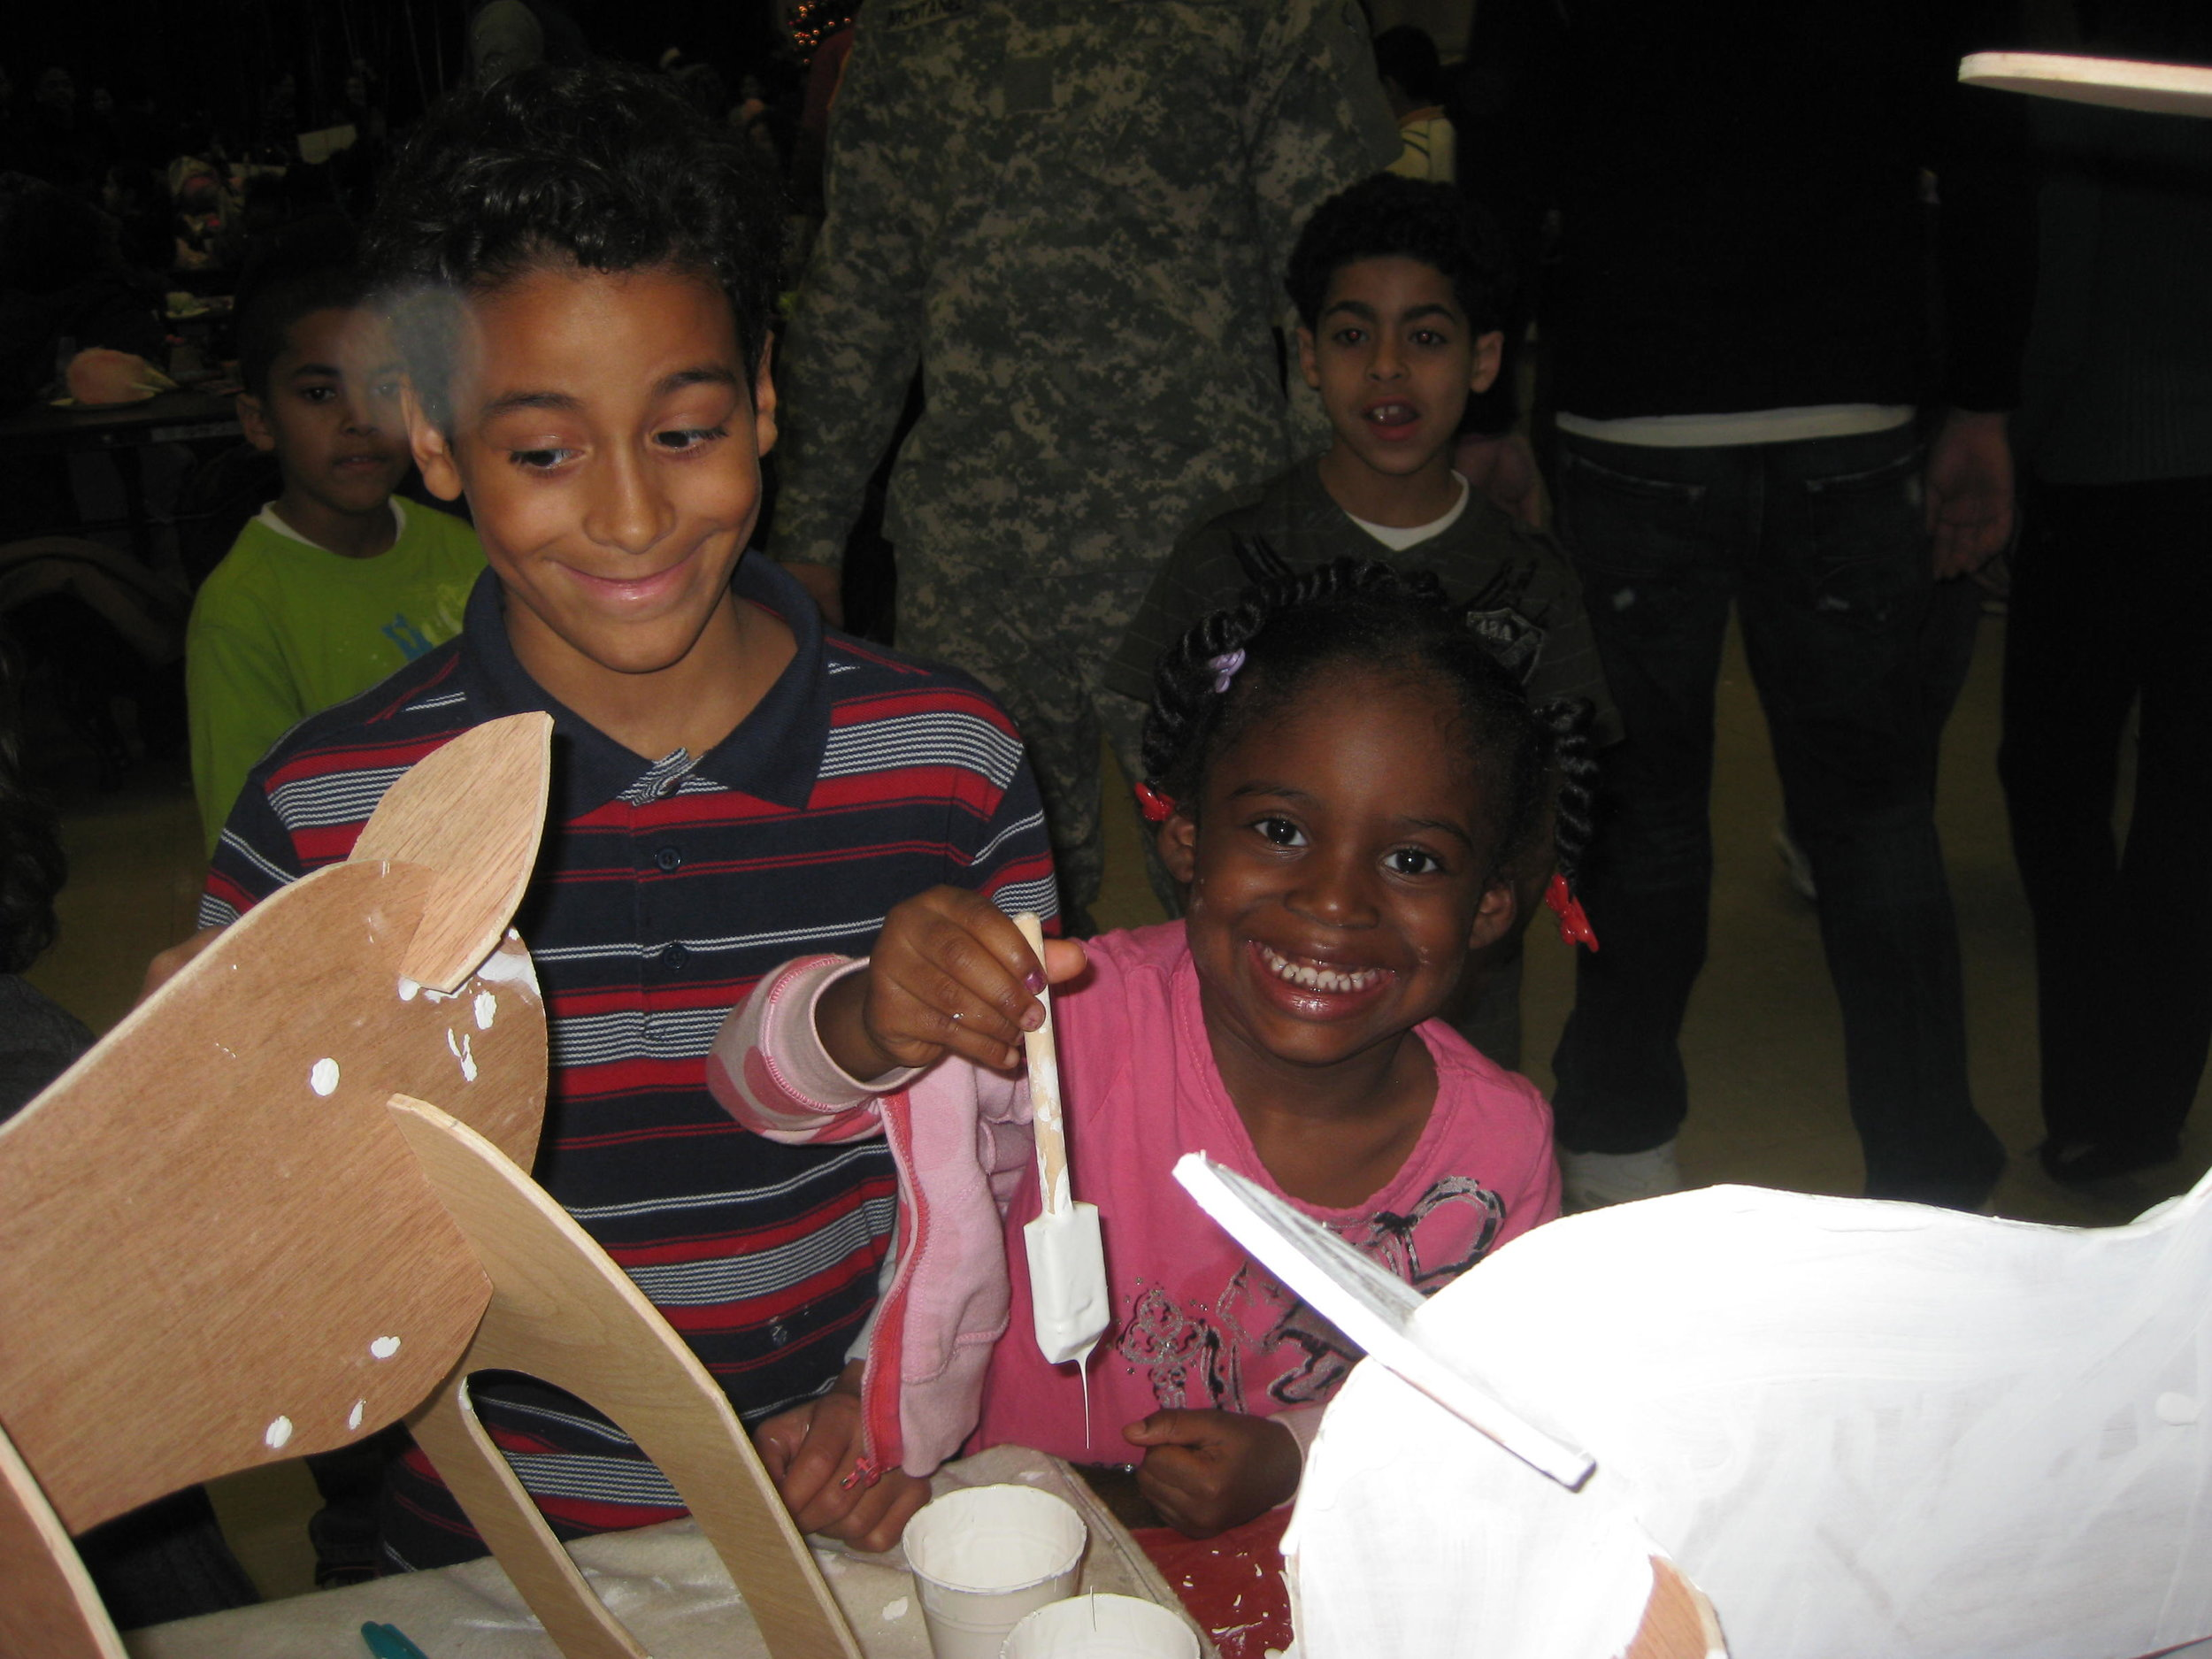 BAY SHORE CHRISTMAS CRAFTS -